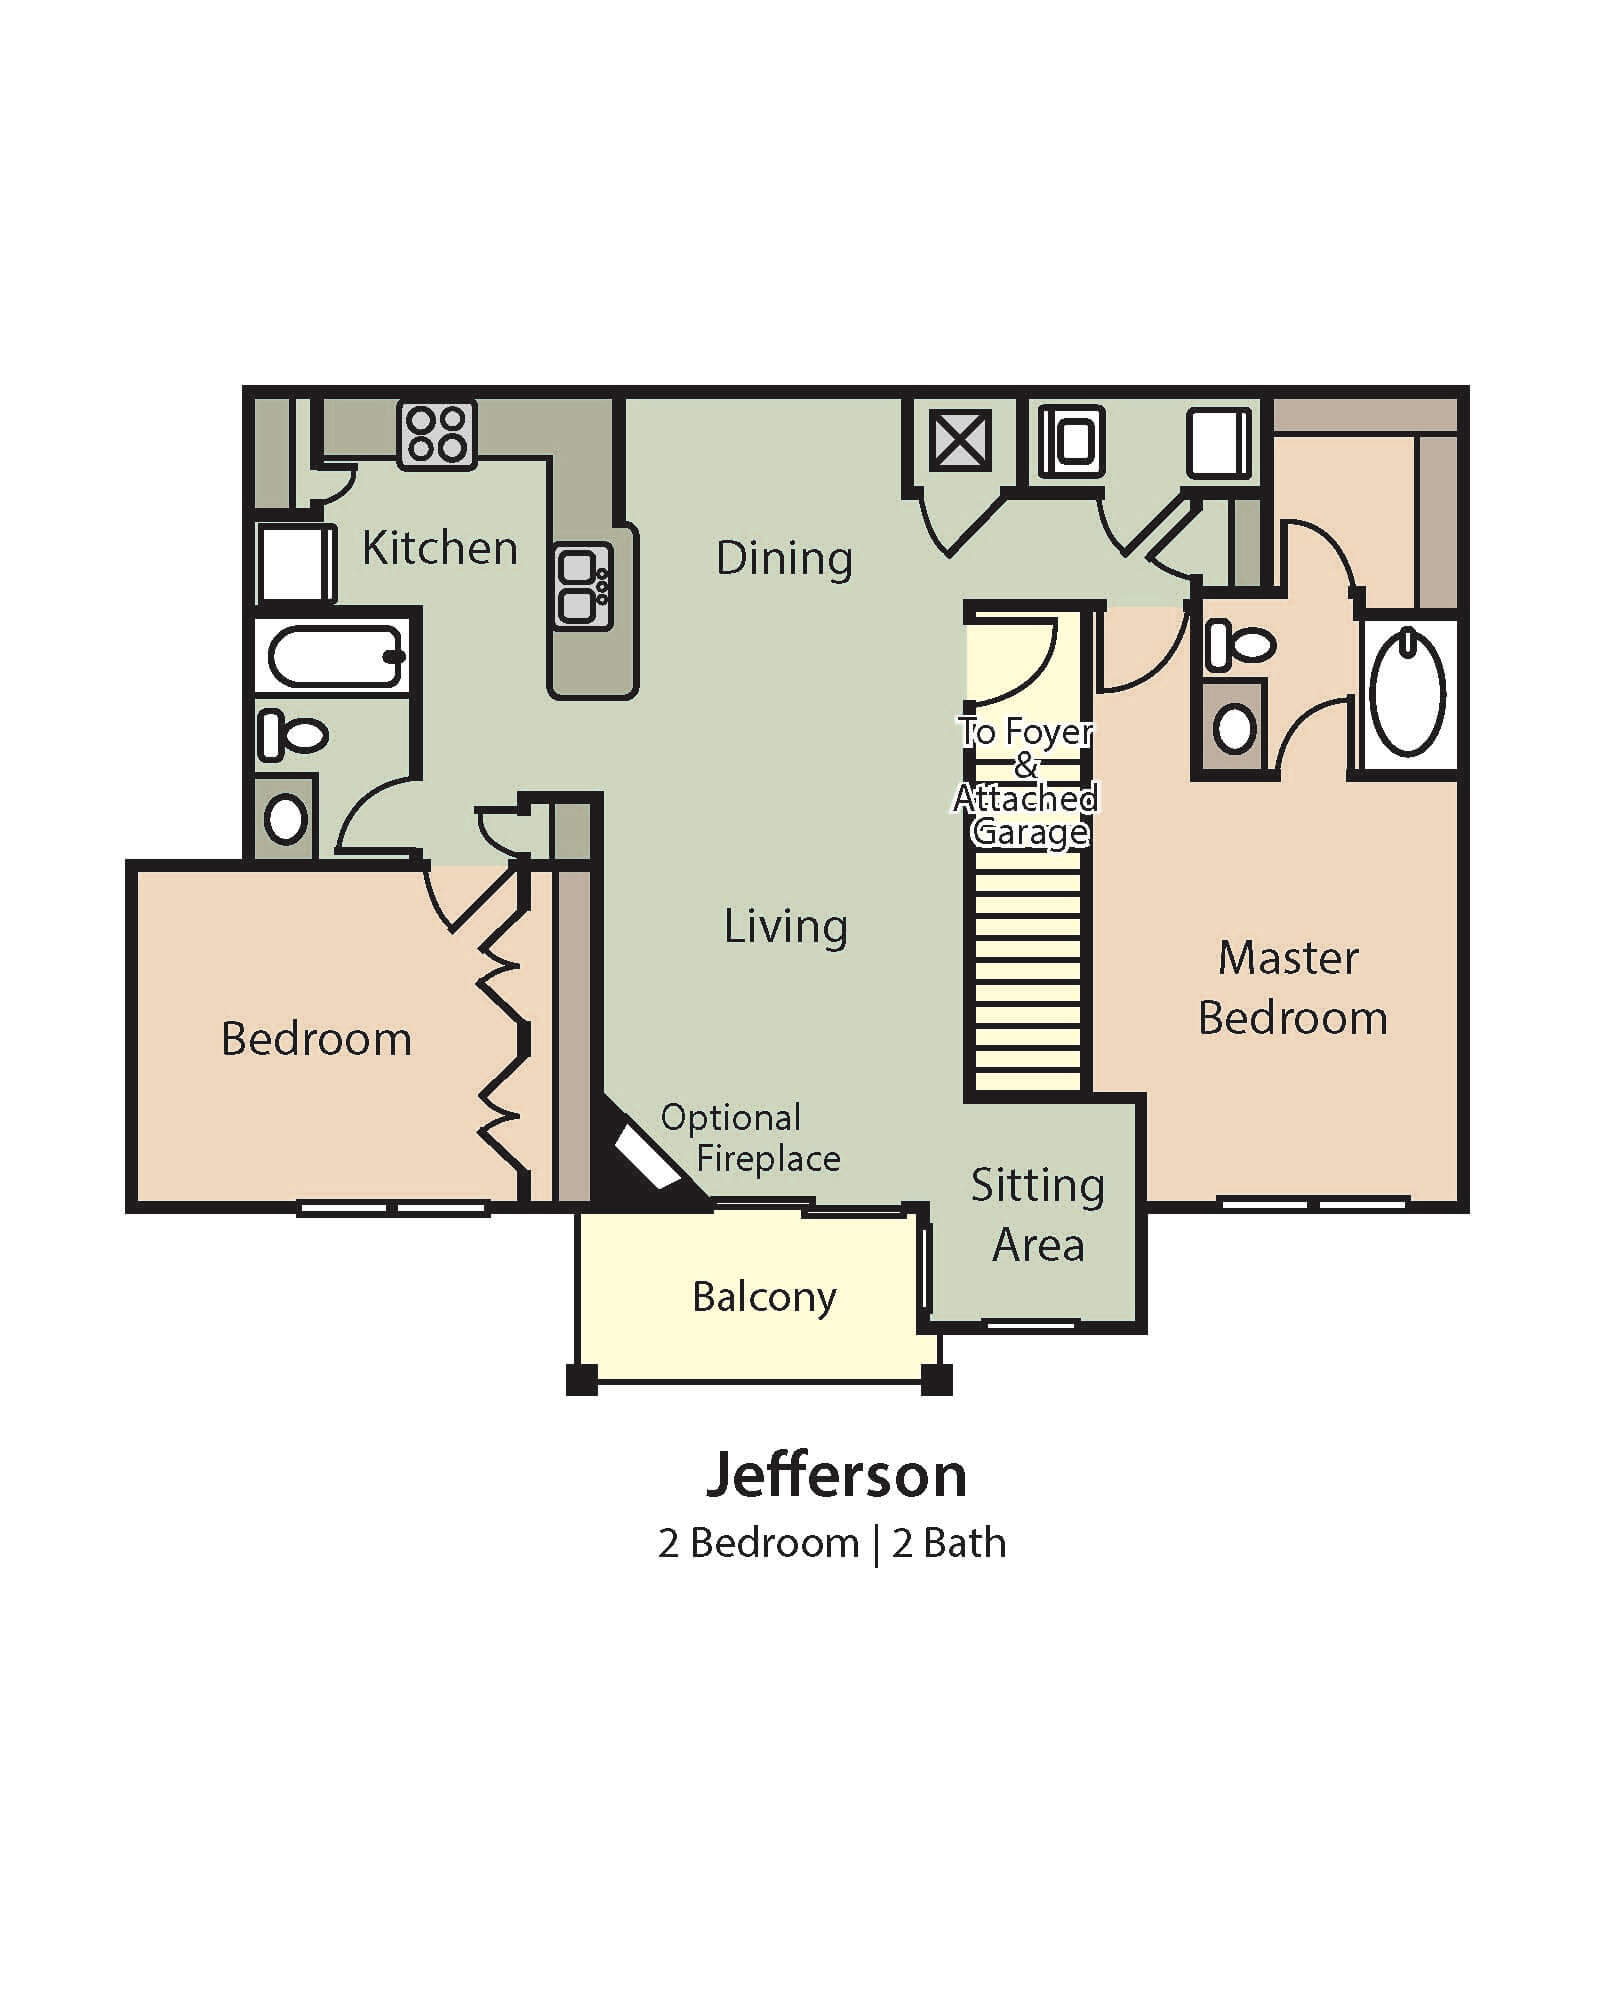 Jefferson Floor Plan, 2 Bedrooms, 2 Baths